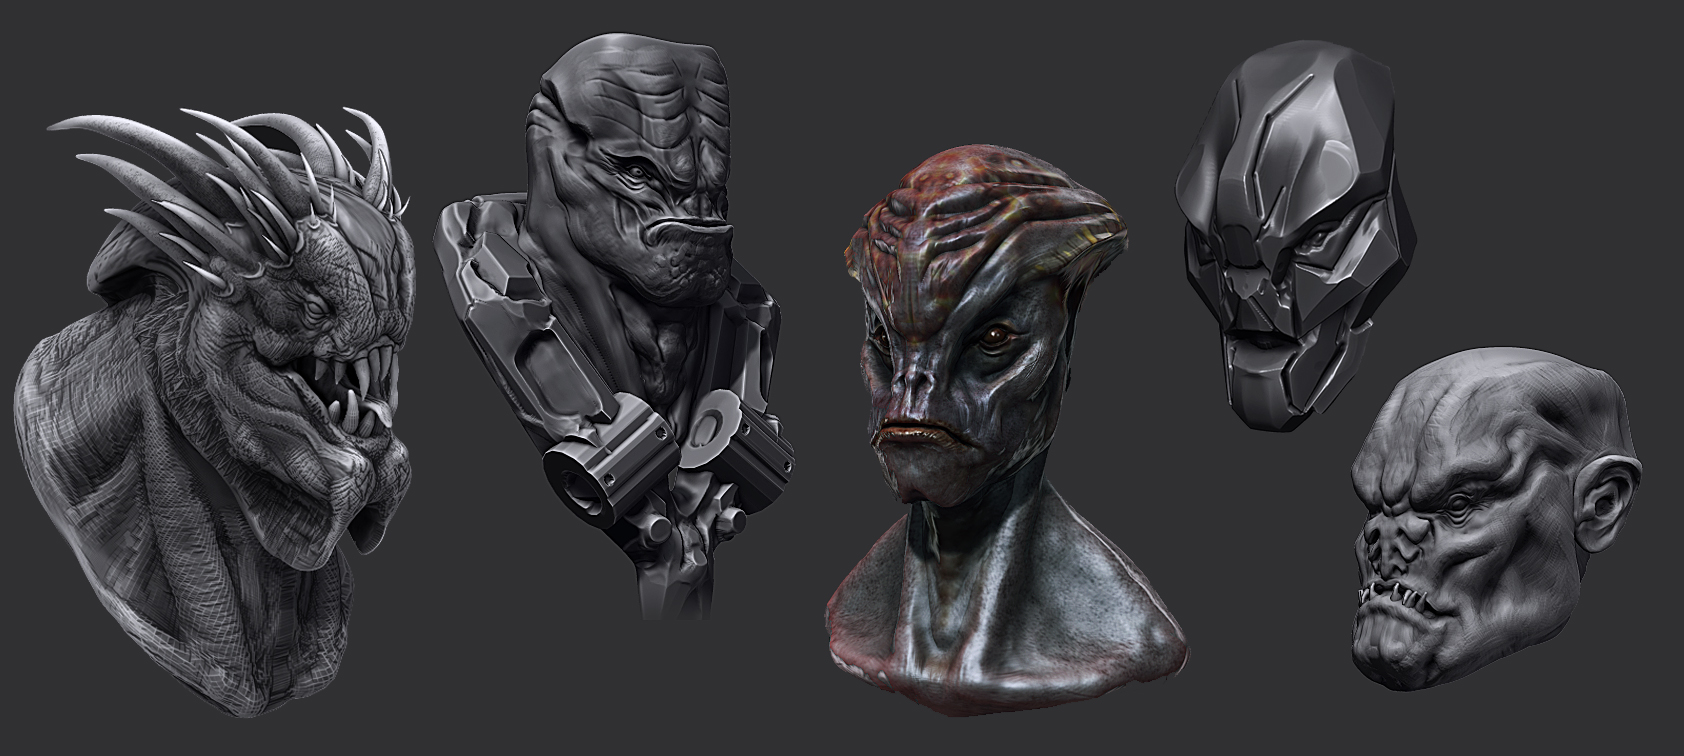 CREATURE BUSTS.jpg